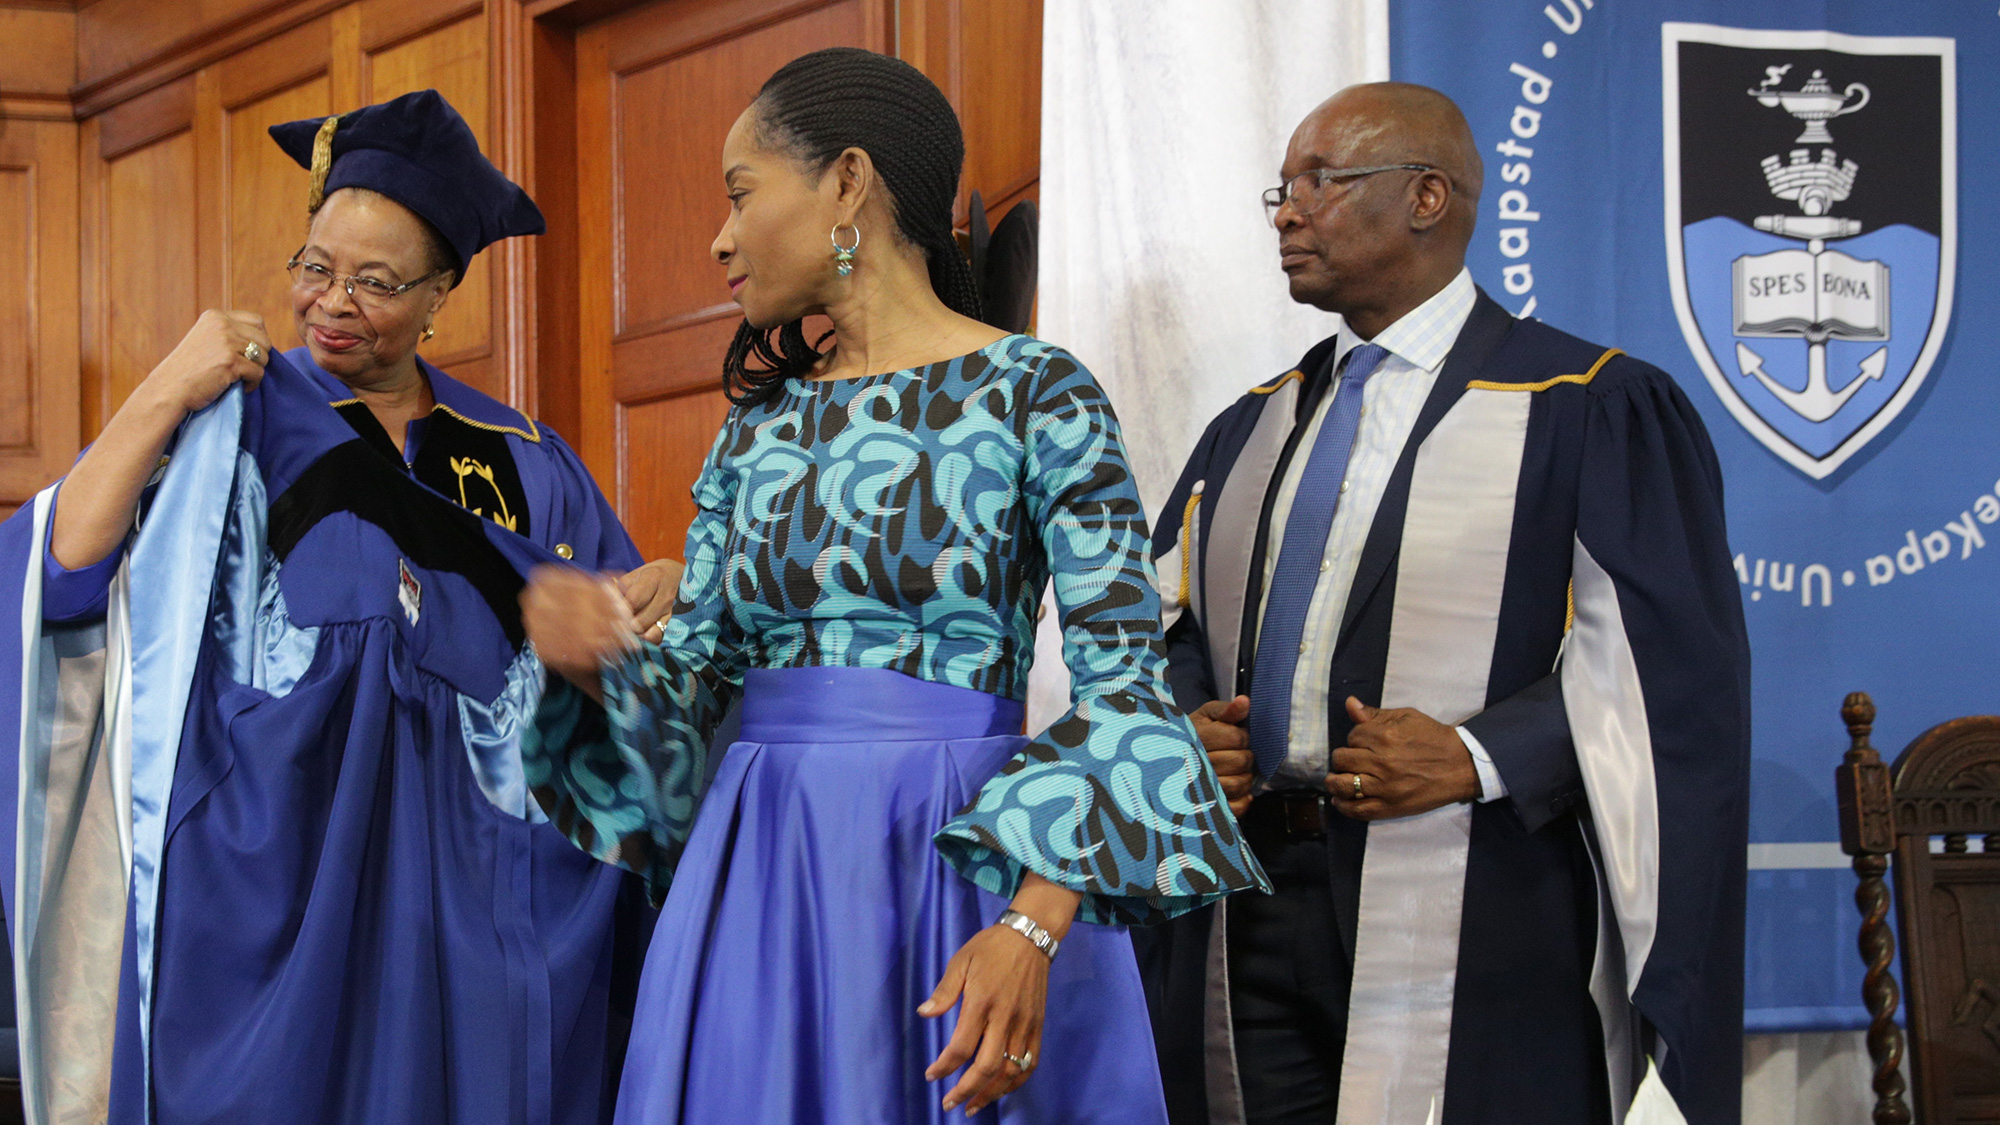 Bing Contact Us >> UCT Vice-Chancellor's robing ceremony at a special